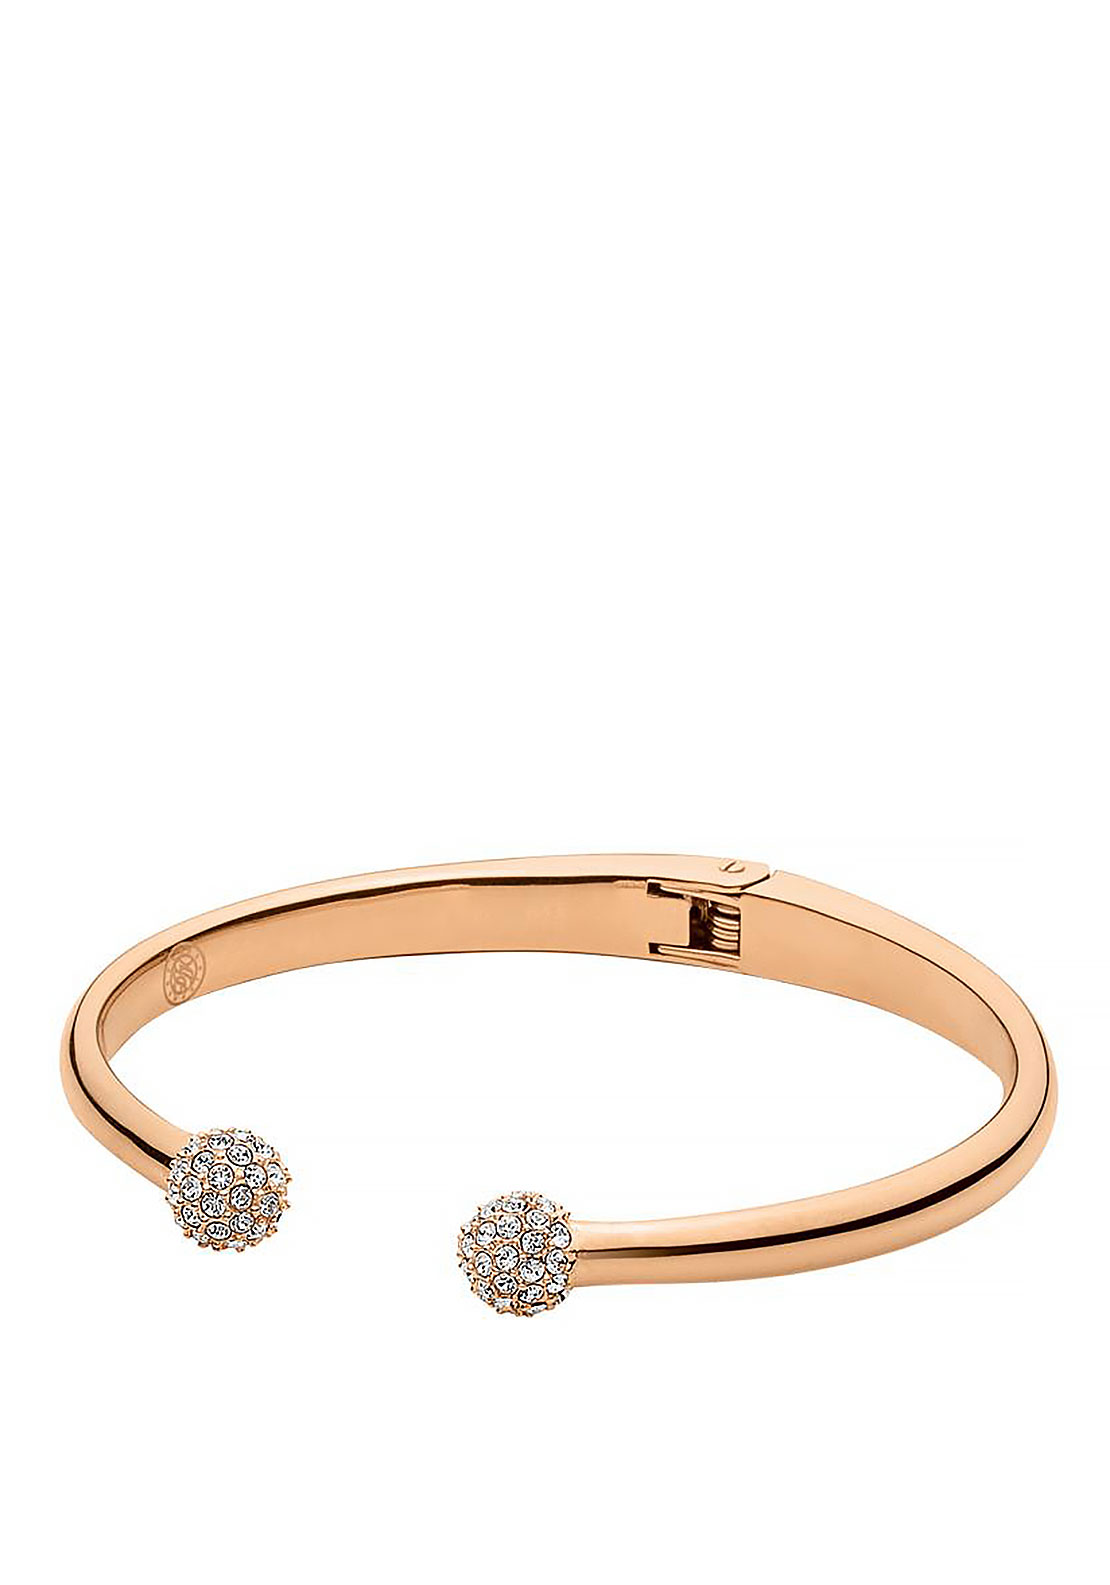 Dyrberg Kern Velvet Bangle, Rose Gold